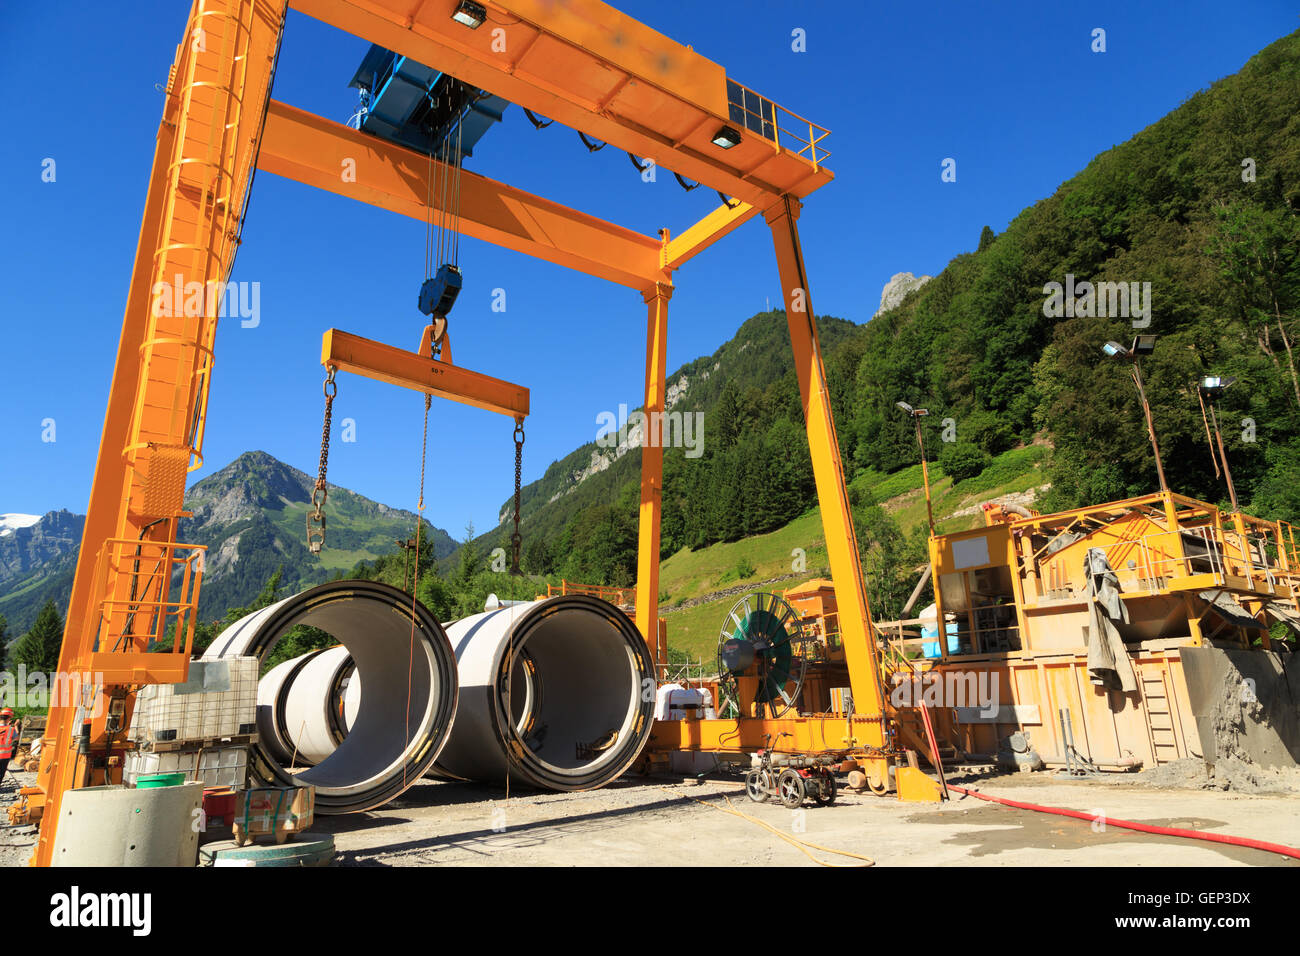 A photograph of a construction crane for a micro-tunneling (microtunneling) project in the alpine region of Switzerland. - Stock Image